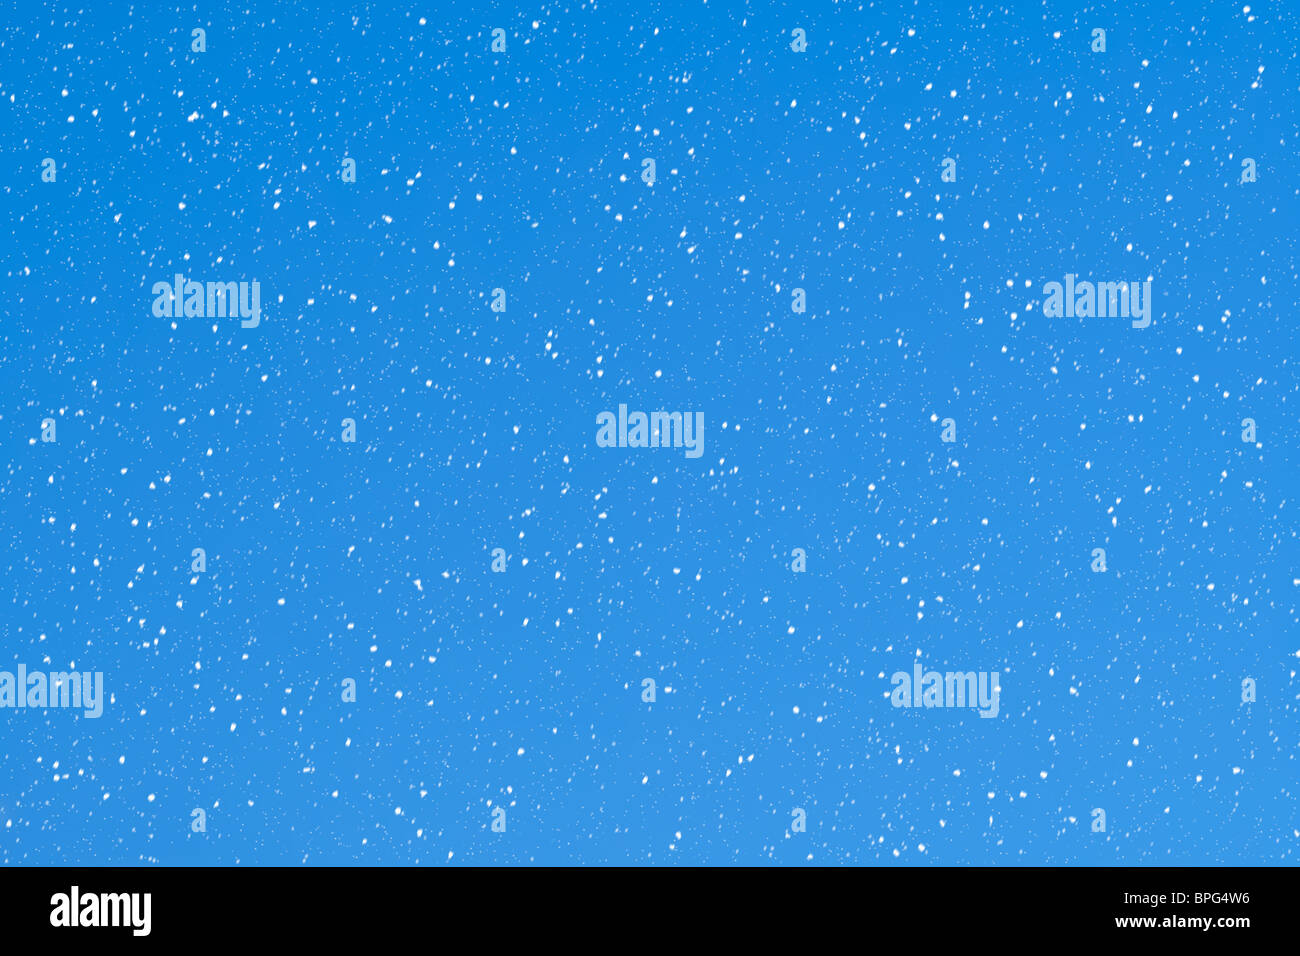 Snowflakes on a light blue background - Stock Image